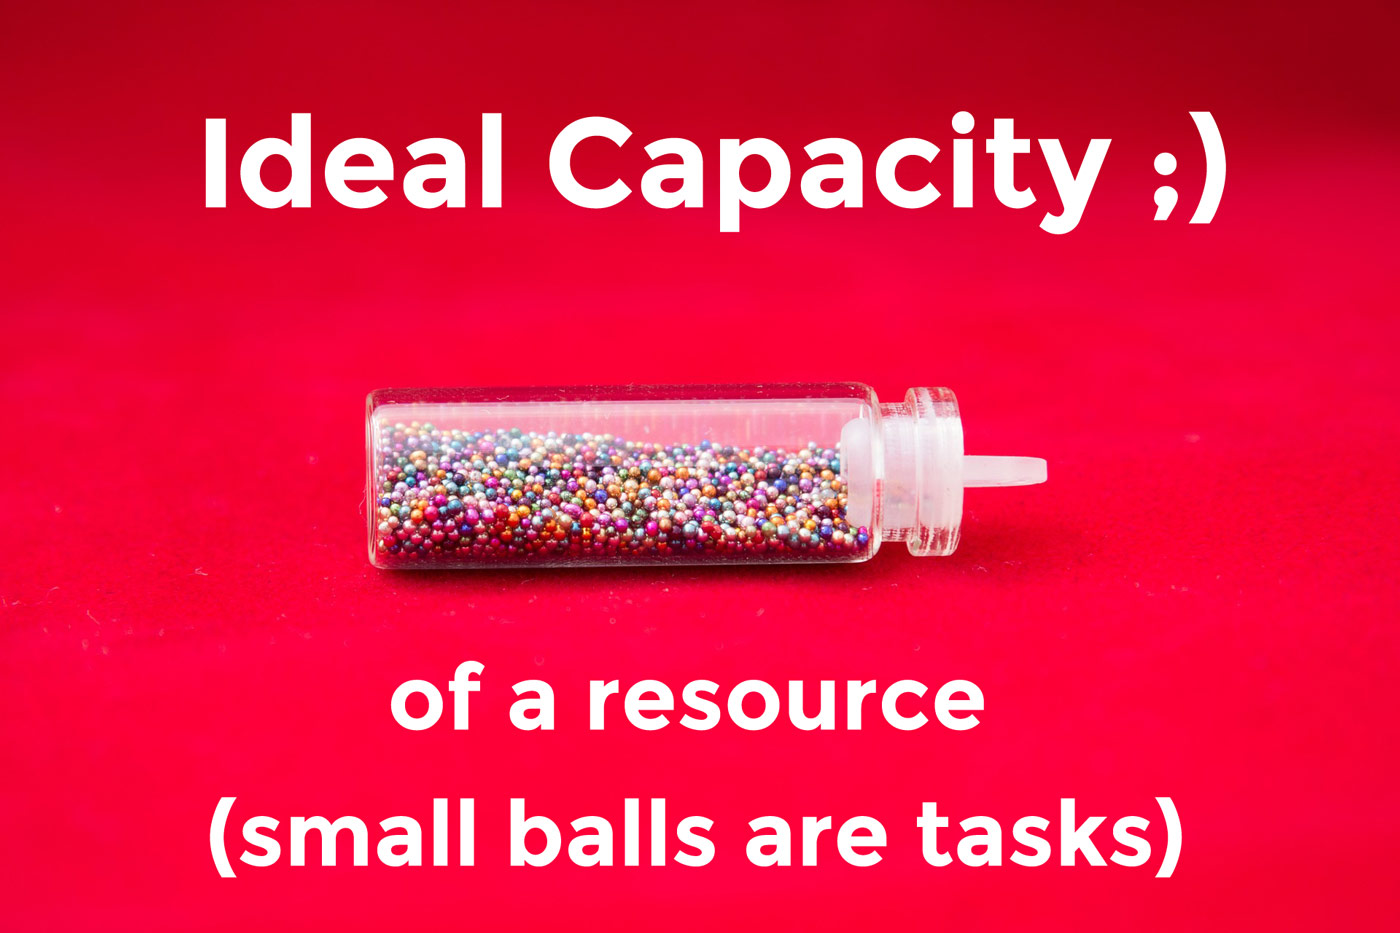 Ideal capacity of a resource